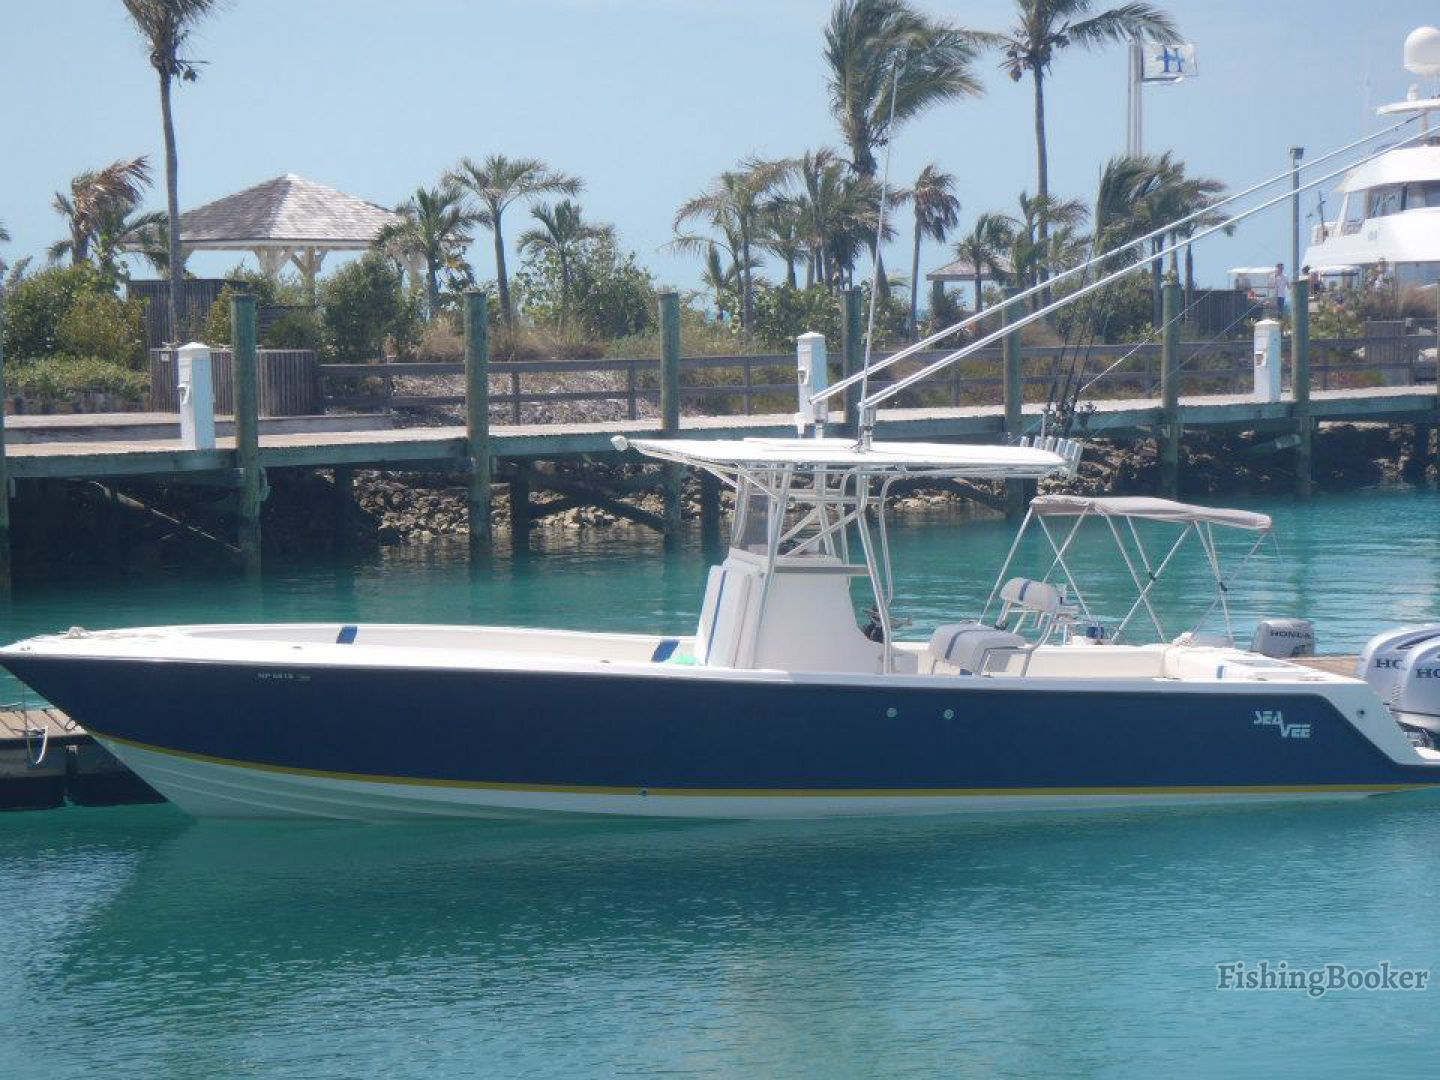 Reel deal 32 sea vee nassau bahamas for Nassau fishing charters